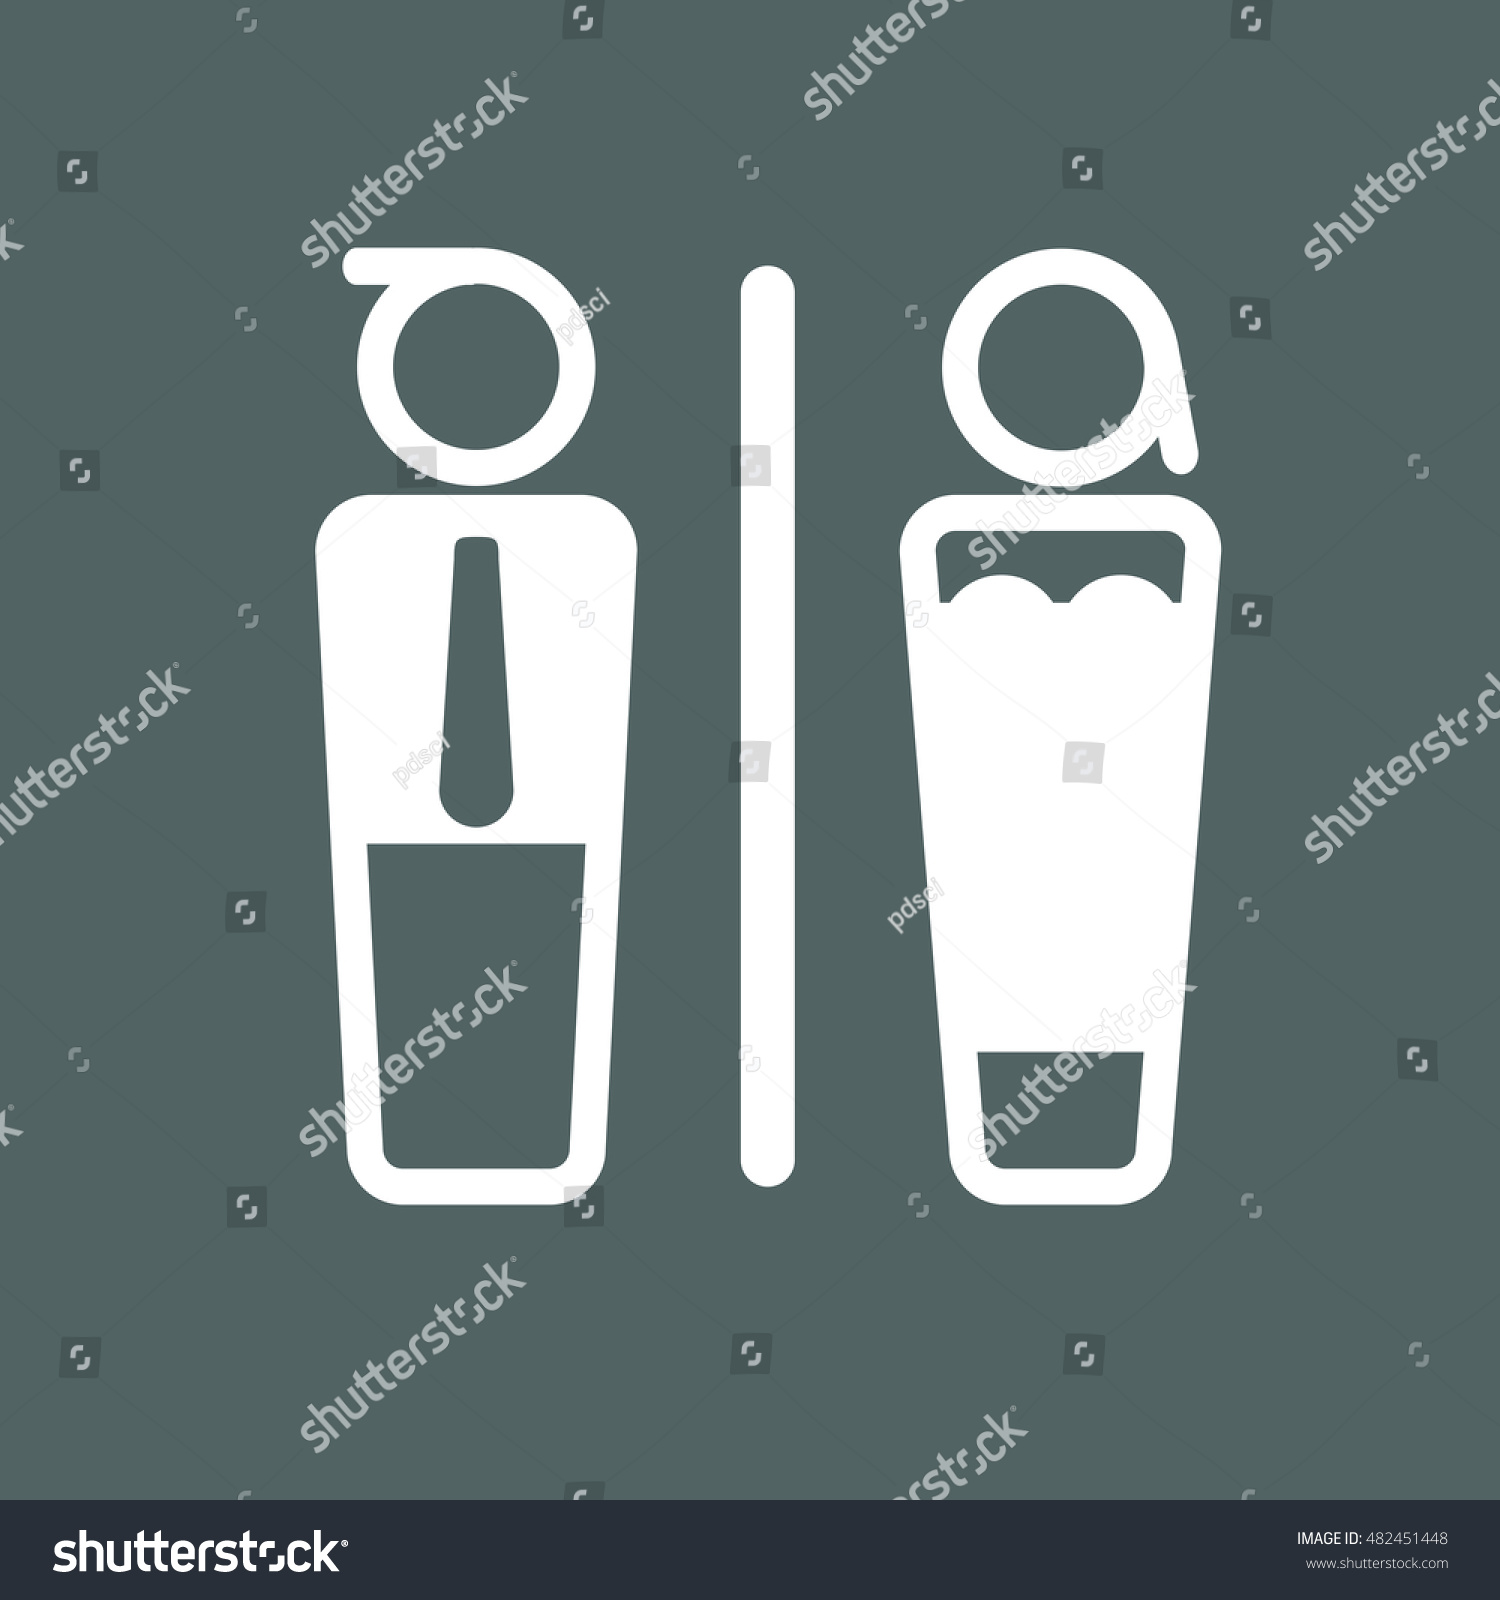 Toilet signs vector set stock images image 36323784 - Toilet Restroom Room Sign Concept Toilet Stock Vector 482451448 Stock Vector Toilet Restroom And Room Sign Concept Toilet Sign Men And Women Vector